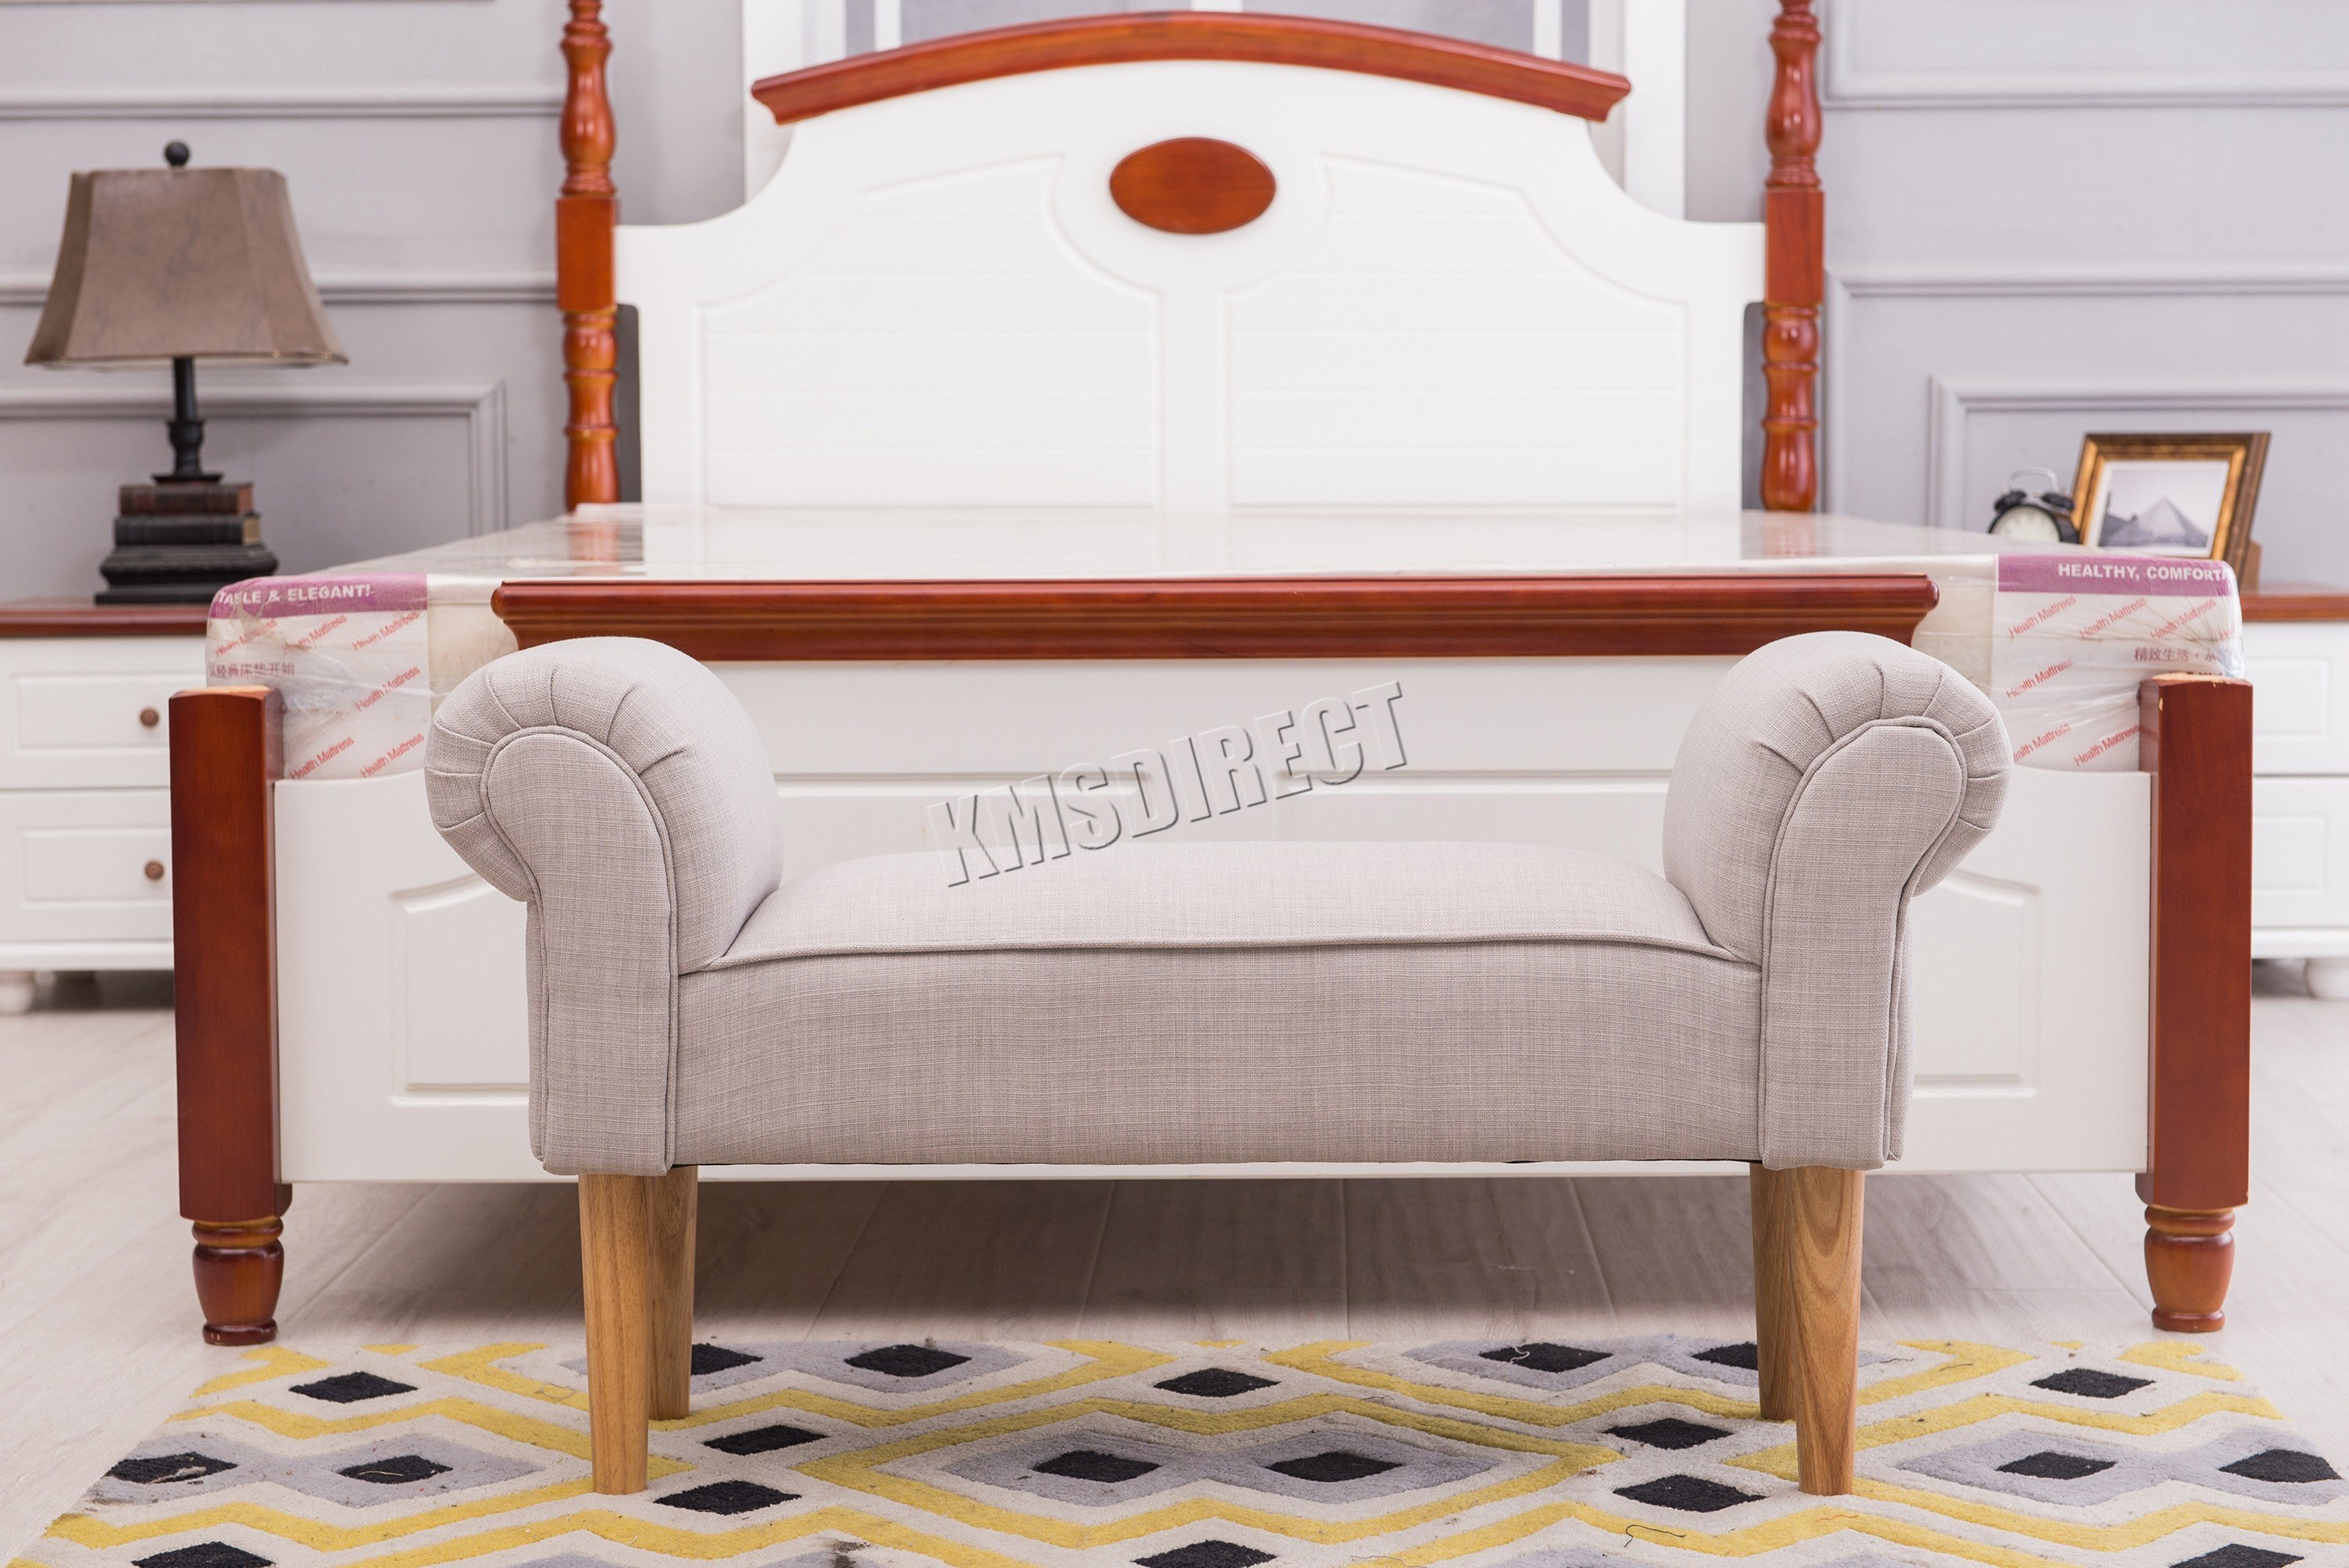 Best Westwood Fabric Bench Footstool Seat Pouf Pouffee Ottoman Stool Bedroom Lounge Ebay With Pictures